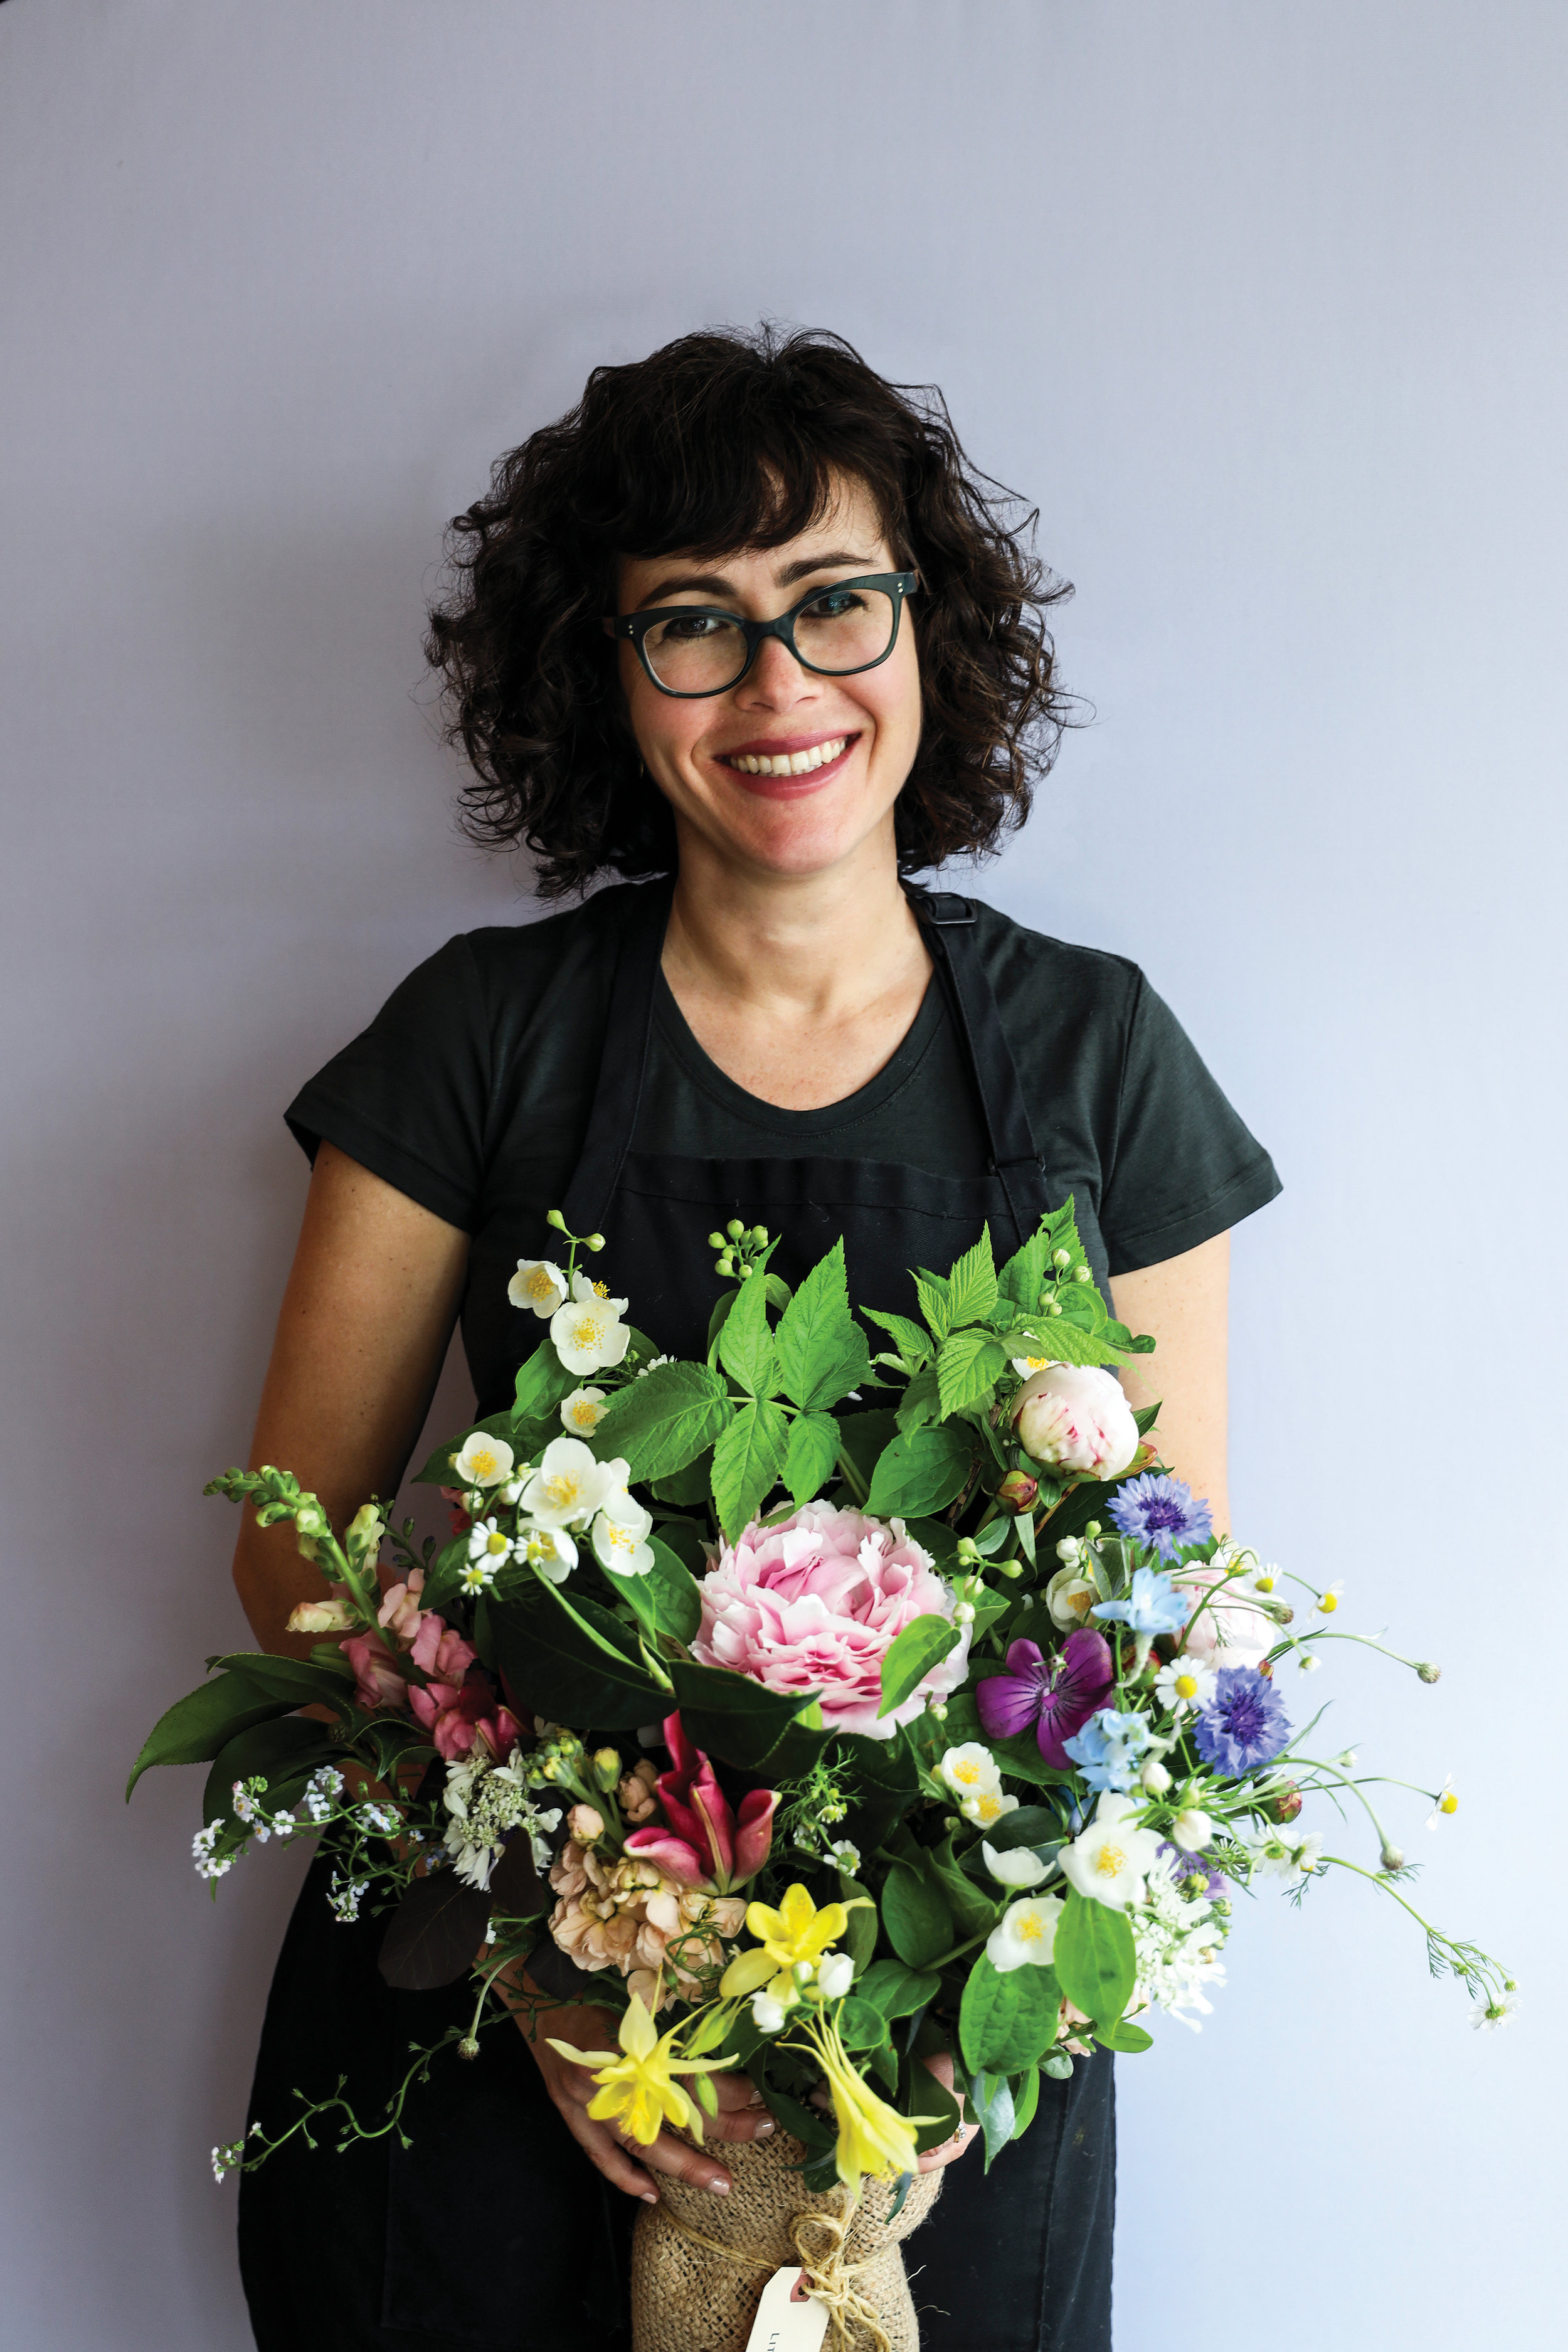 Tobie Whitman holds a Little Acre bouquet sourced from only local flowers. Photo by Jennifer Chase.